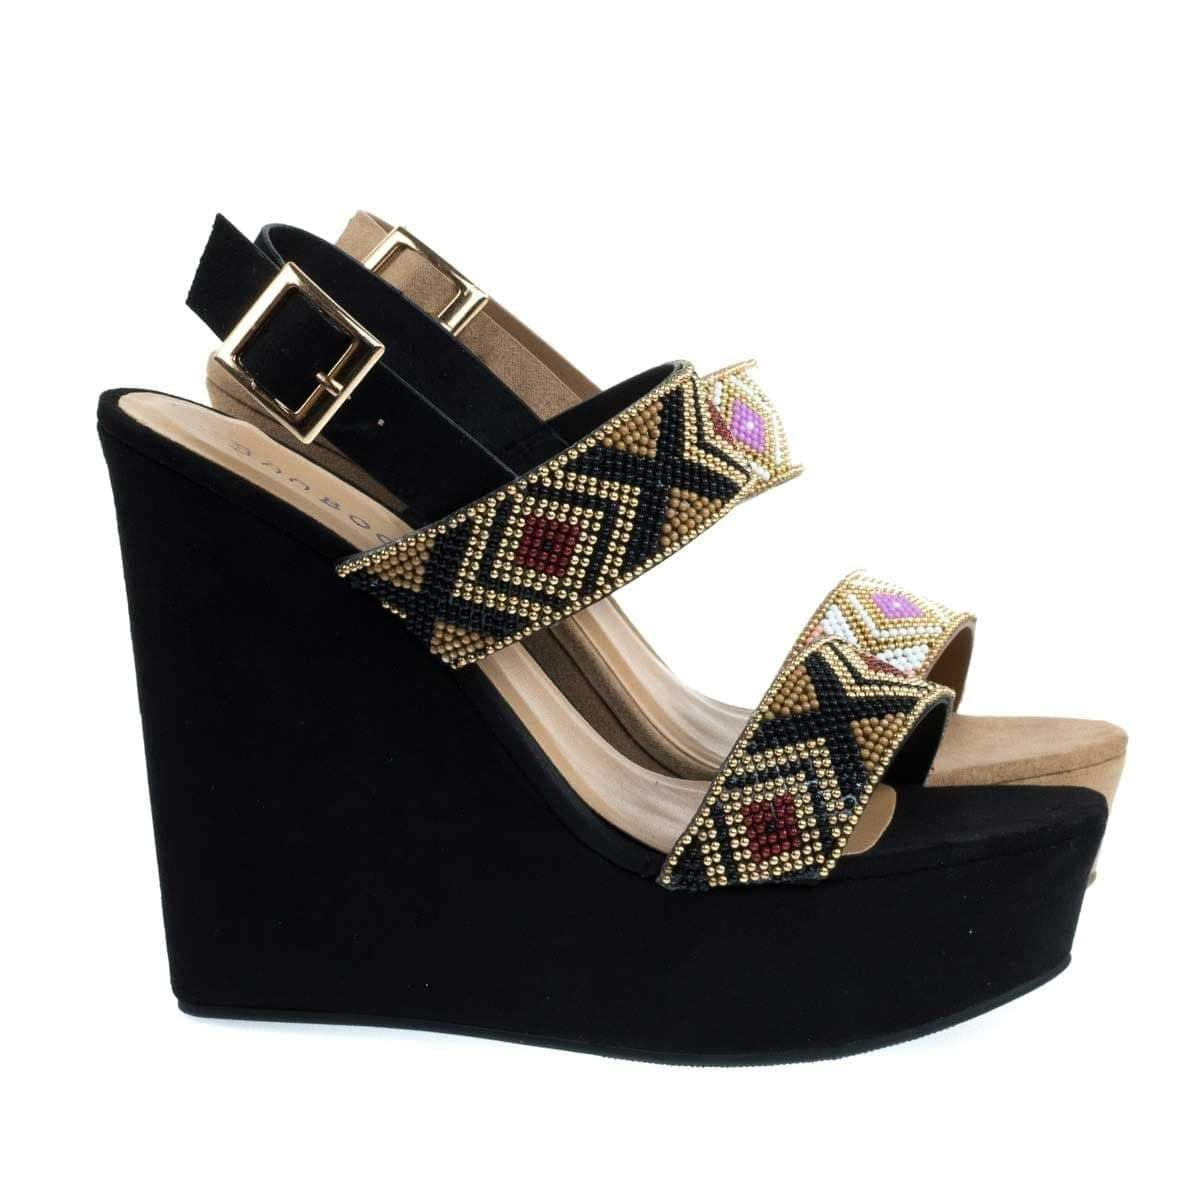 Image of Charade65 By Bamboo, Platform Wedge Sandal w Festive Tribal Beaded Strap w Faux Suede